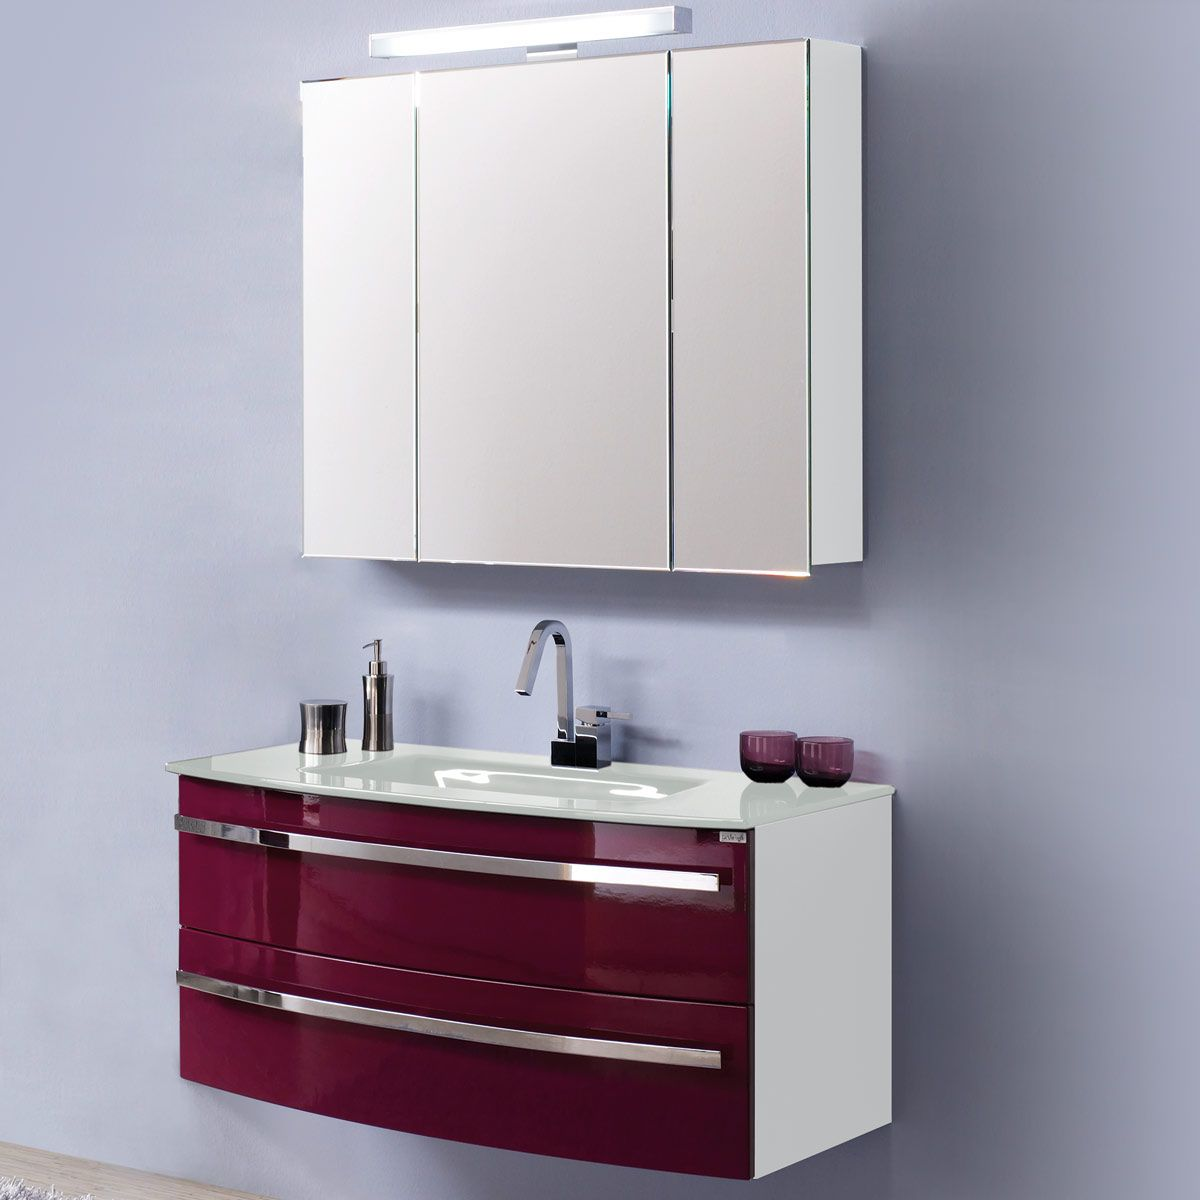 Home 24 - Eek a, meuble lavabo kingston - blanc / mûre brillant, aqua suite